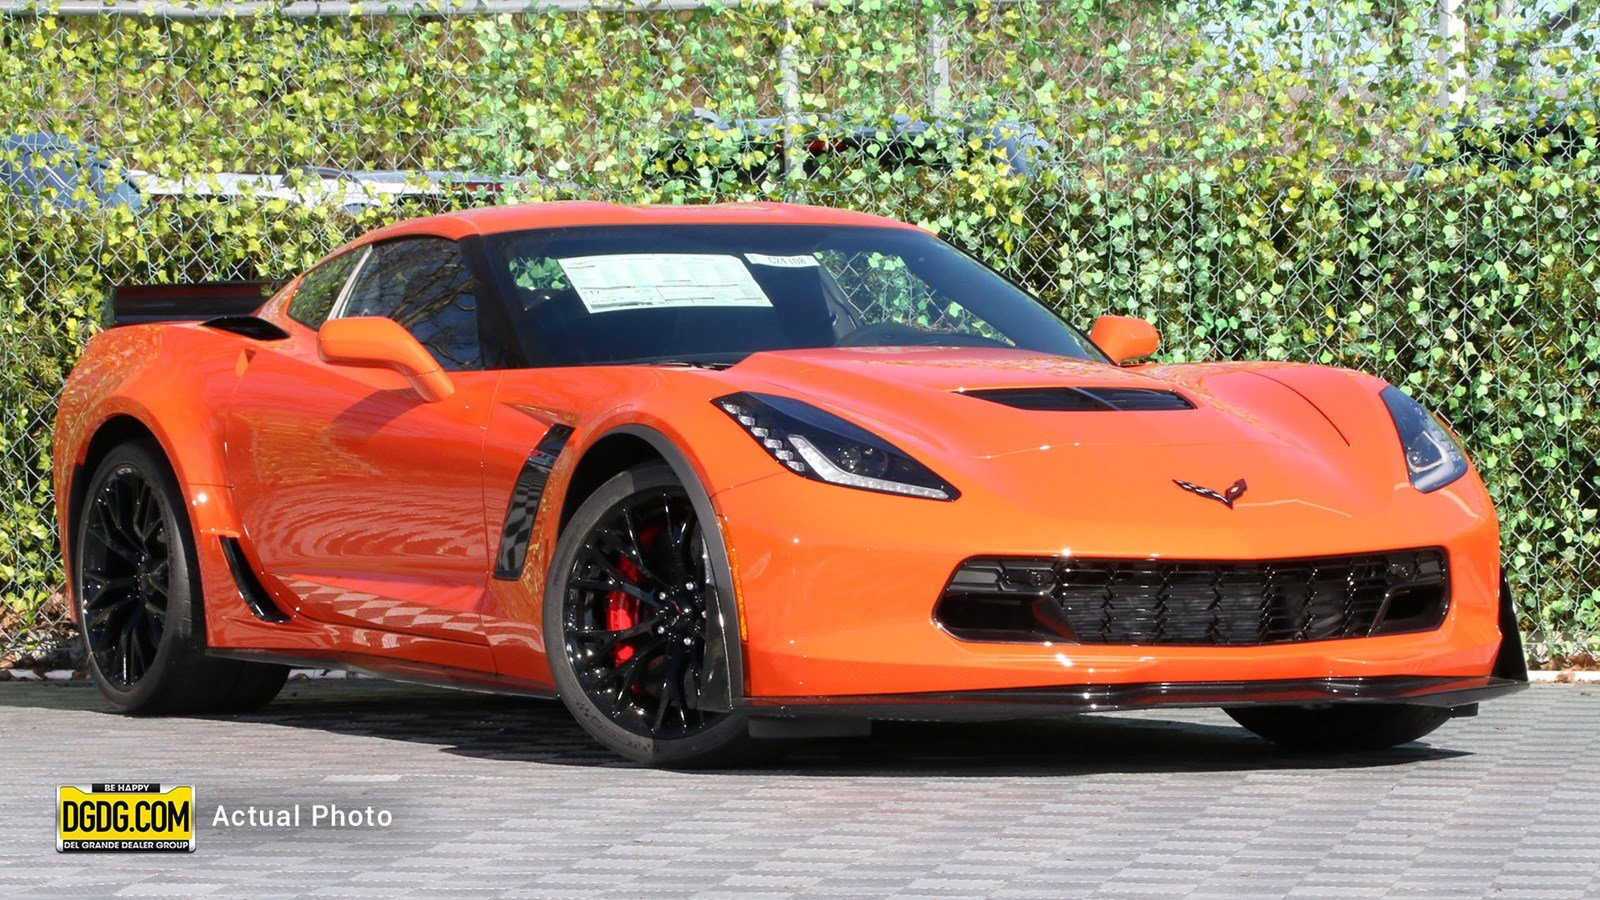 Z06 Corvette For Sale >> 2019 Chevrolet Corvette Z06 2lz Rwd 2dr Car